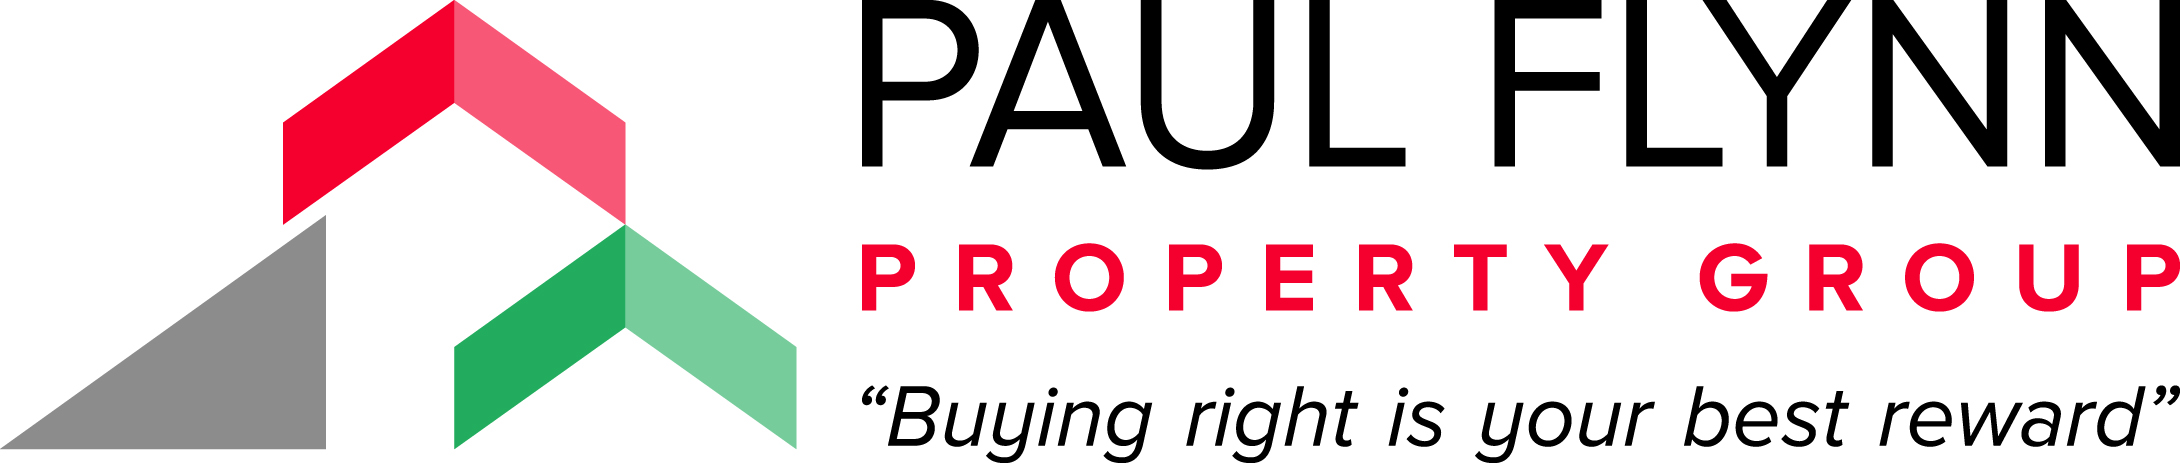 Paul Flynn Property Group